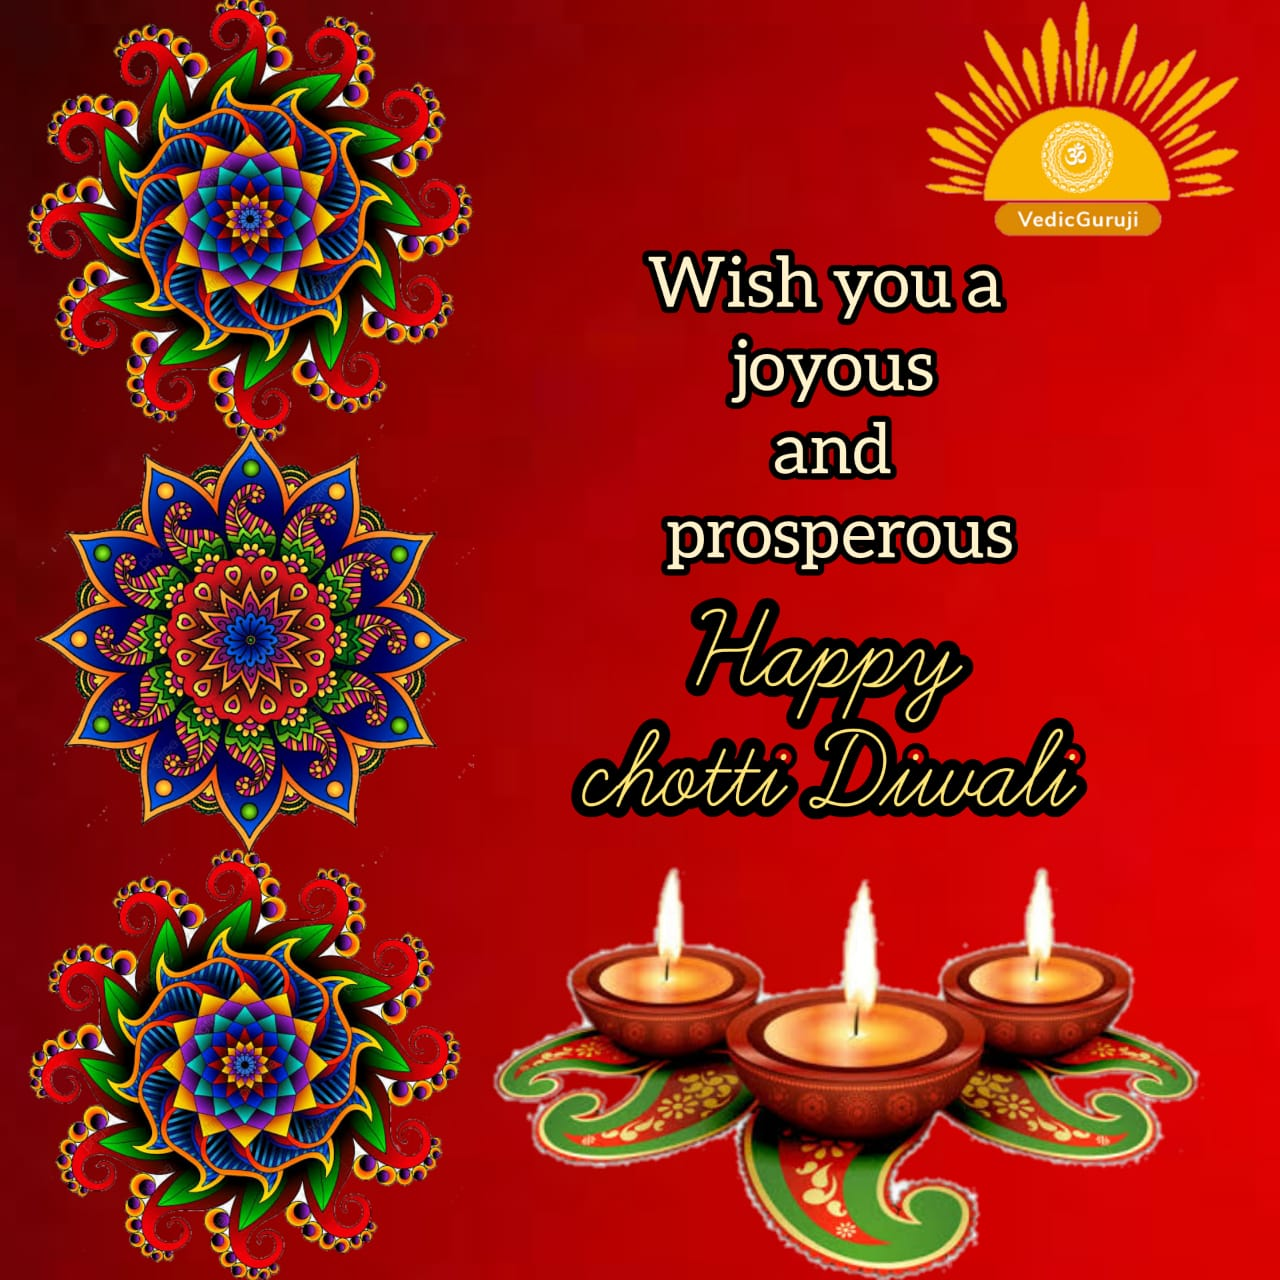 Choti Diwali and its significance